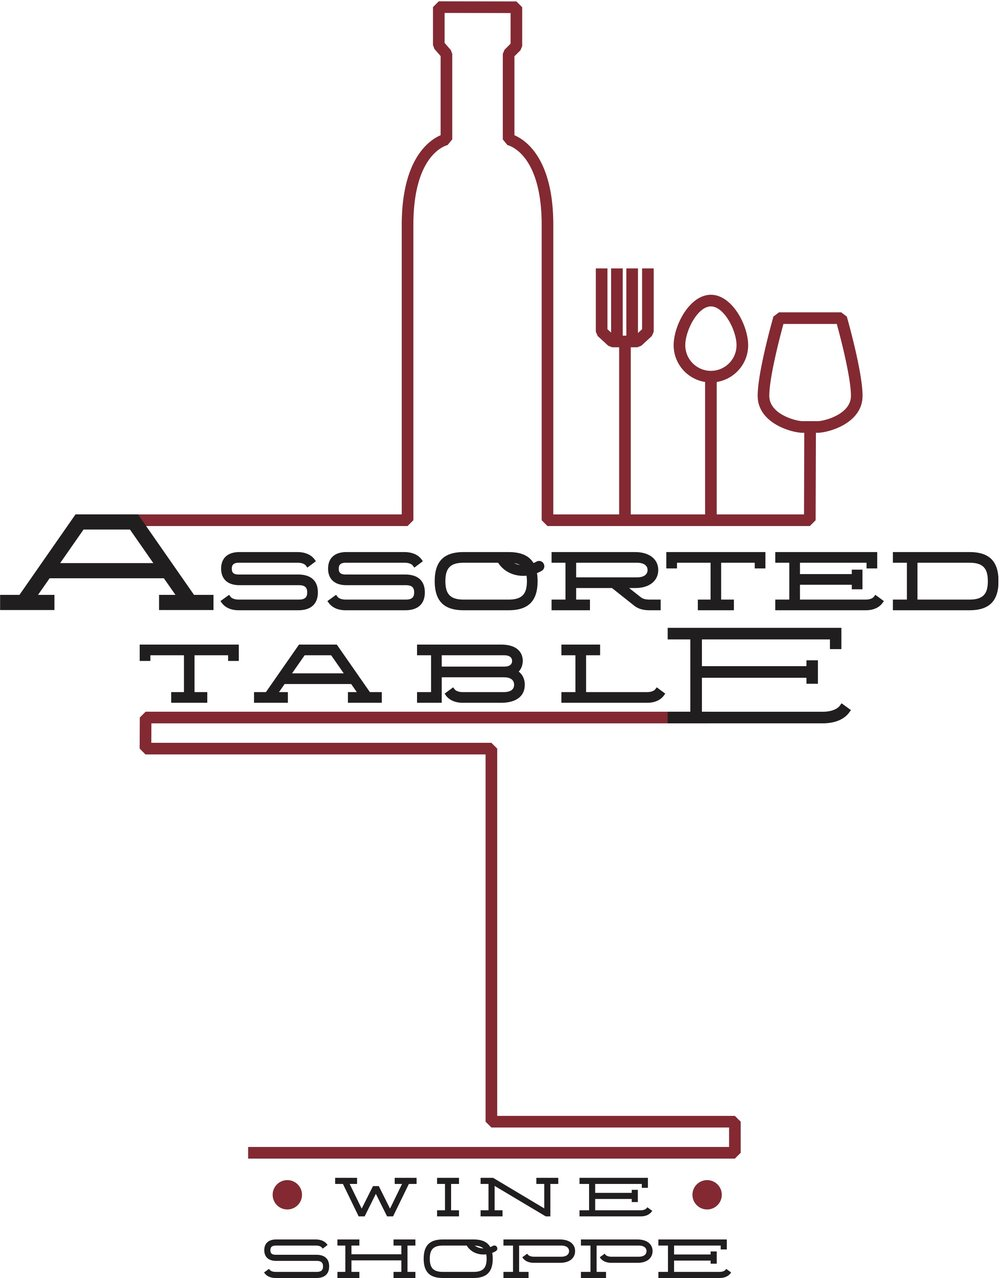 Assorted Table.jpg